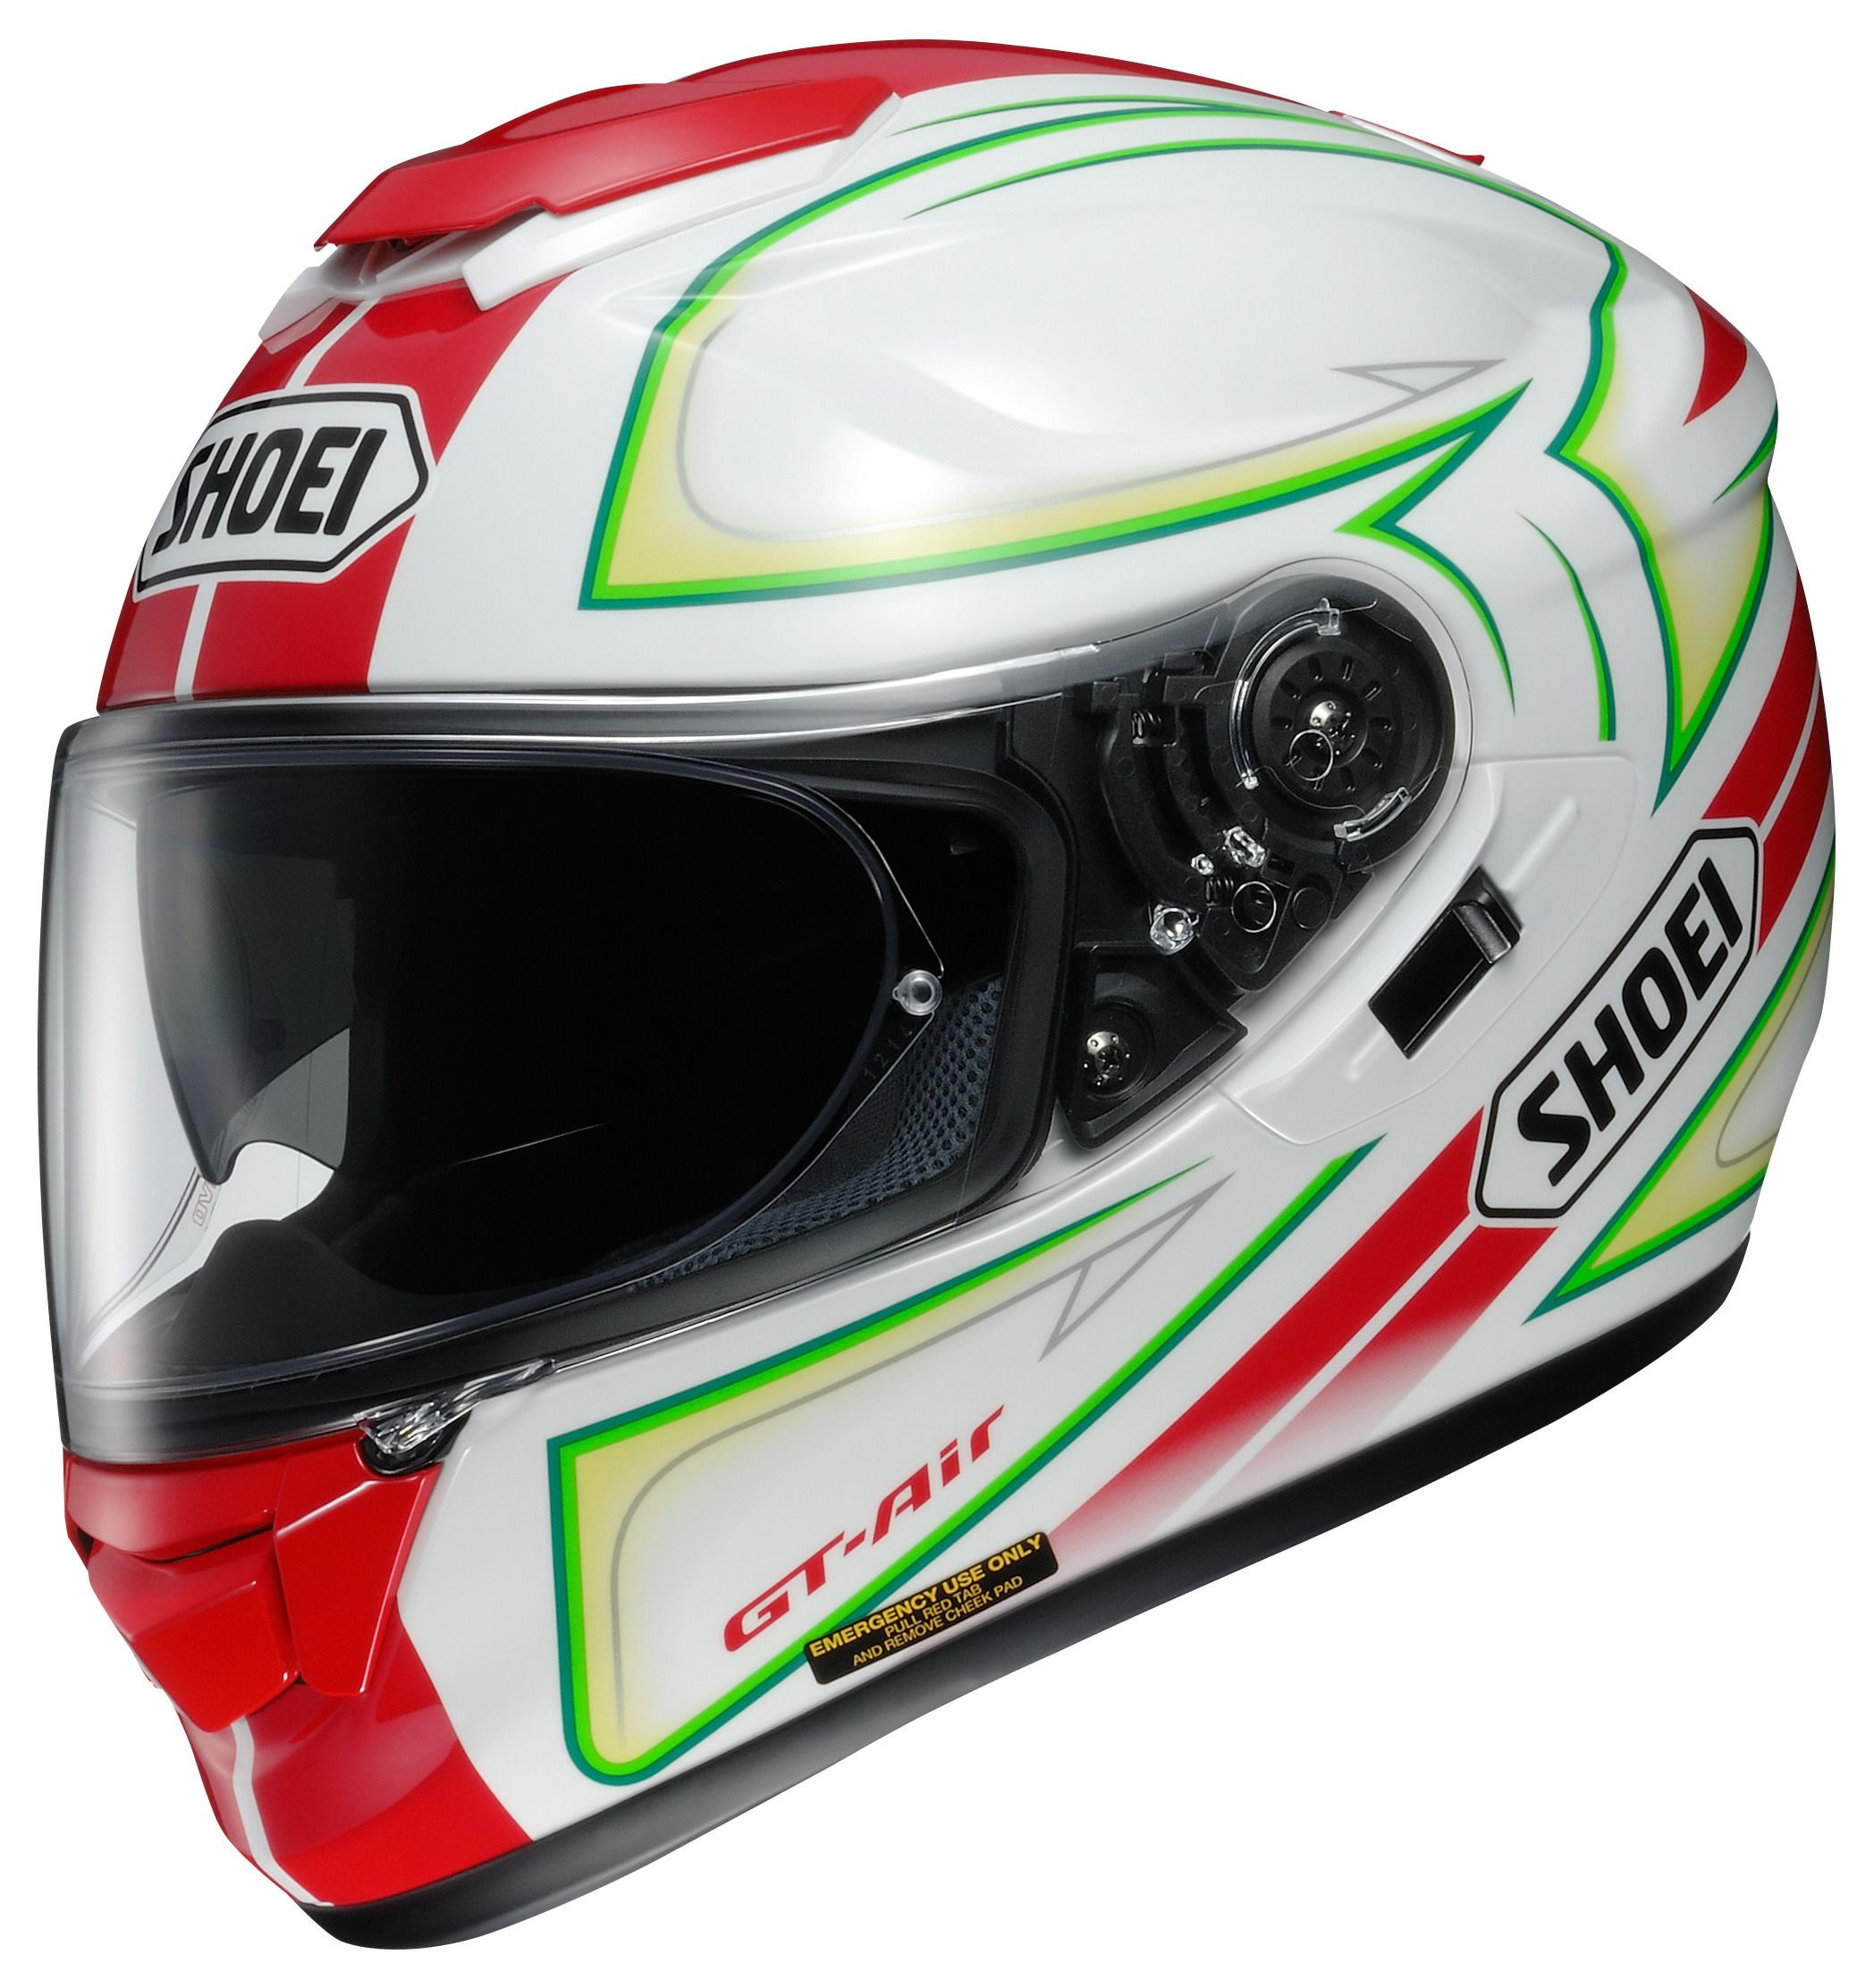 Shoei Gt Air Expanse Helmet 25 17100 Off Revzilla Home Frames Circuit Board Certificate Frame